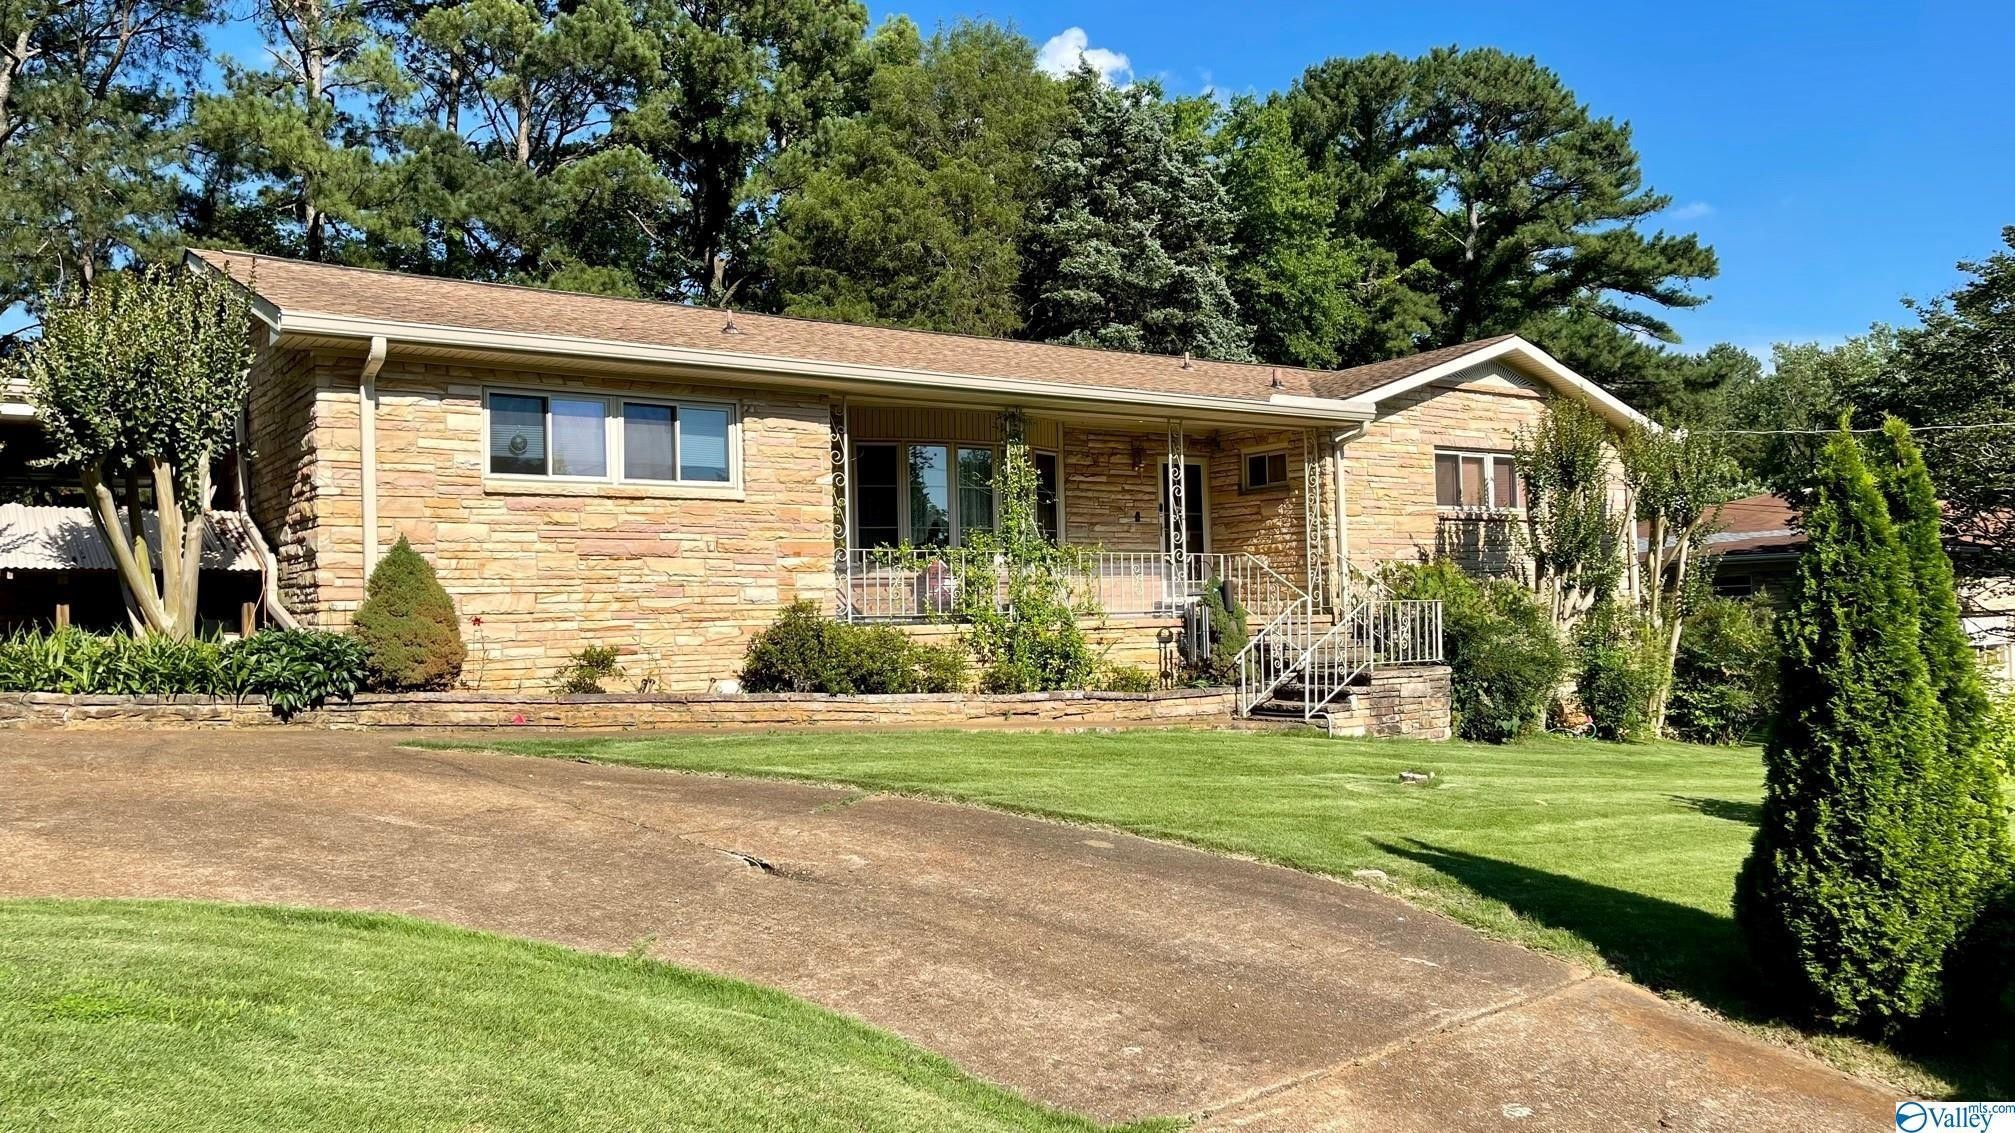 4-Bedroom House In McThornmor Acres